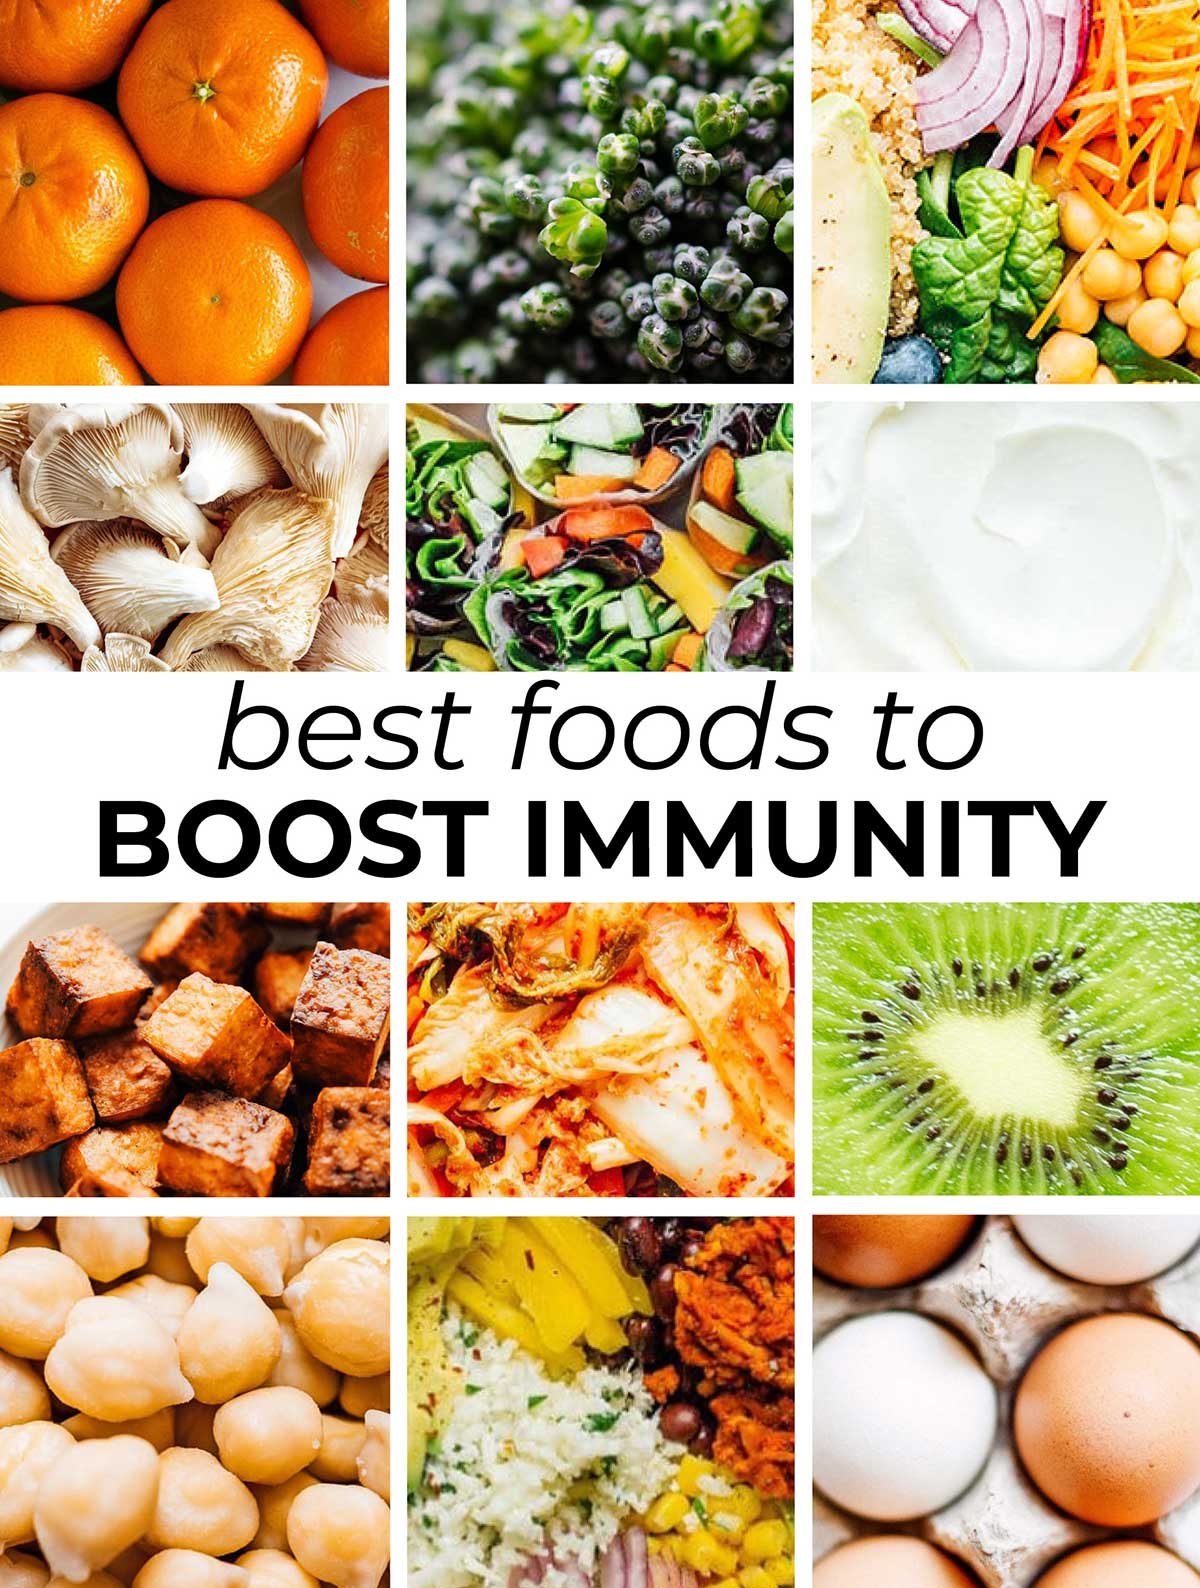 Collage of foods that boost immunity